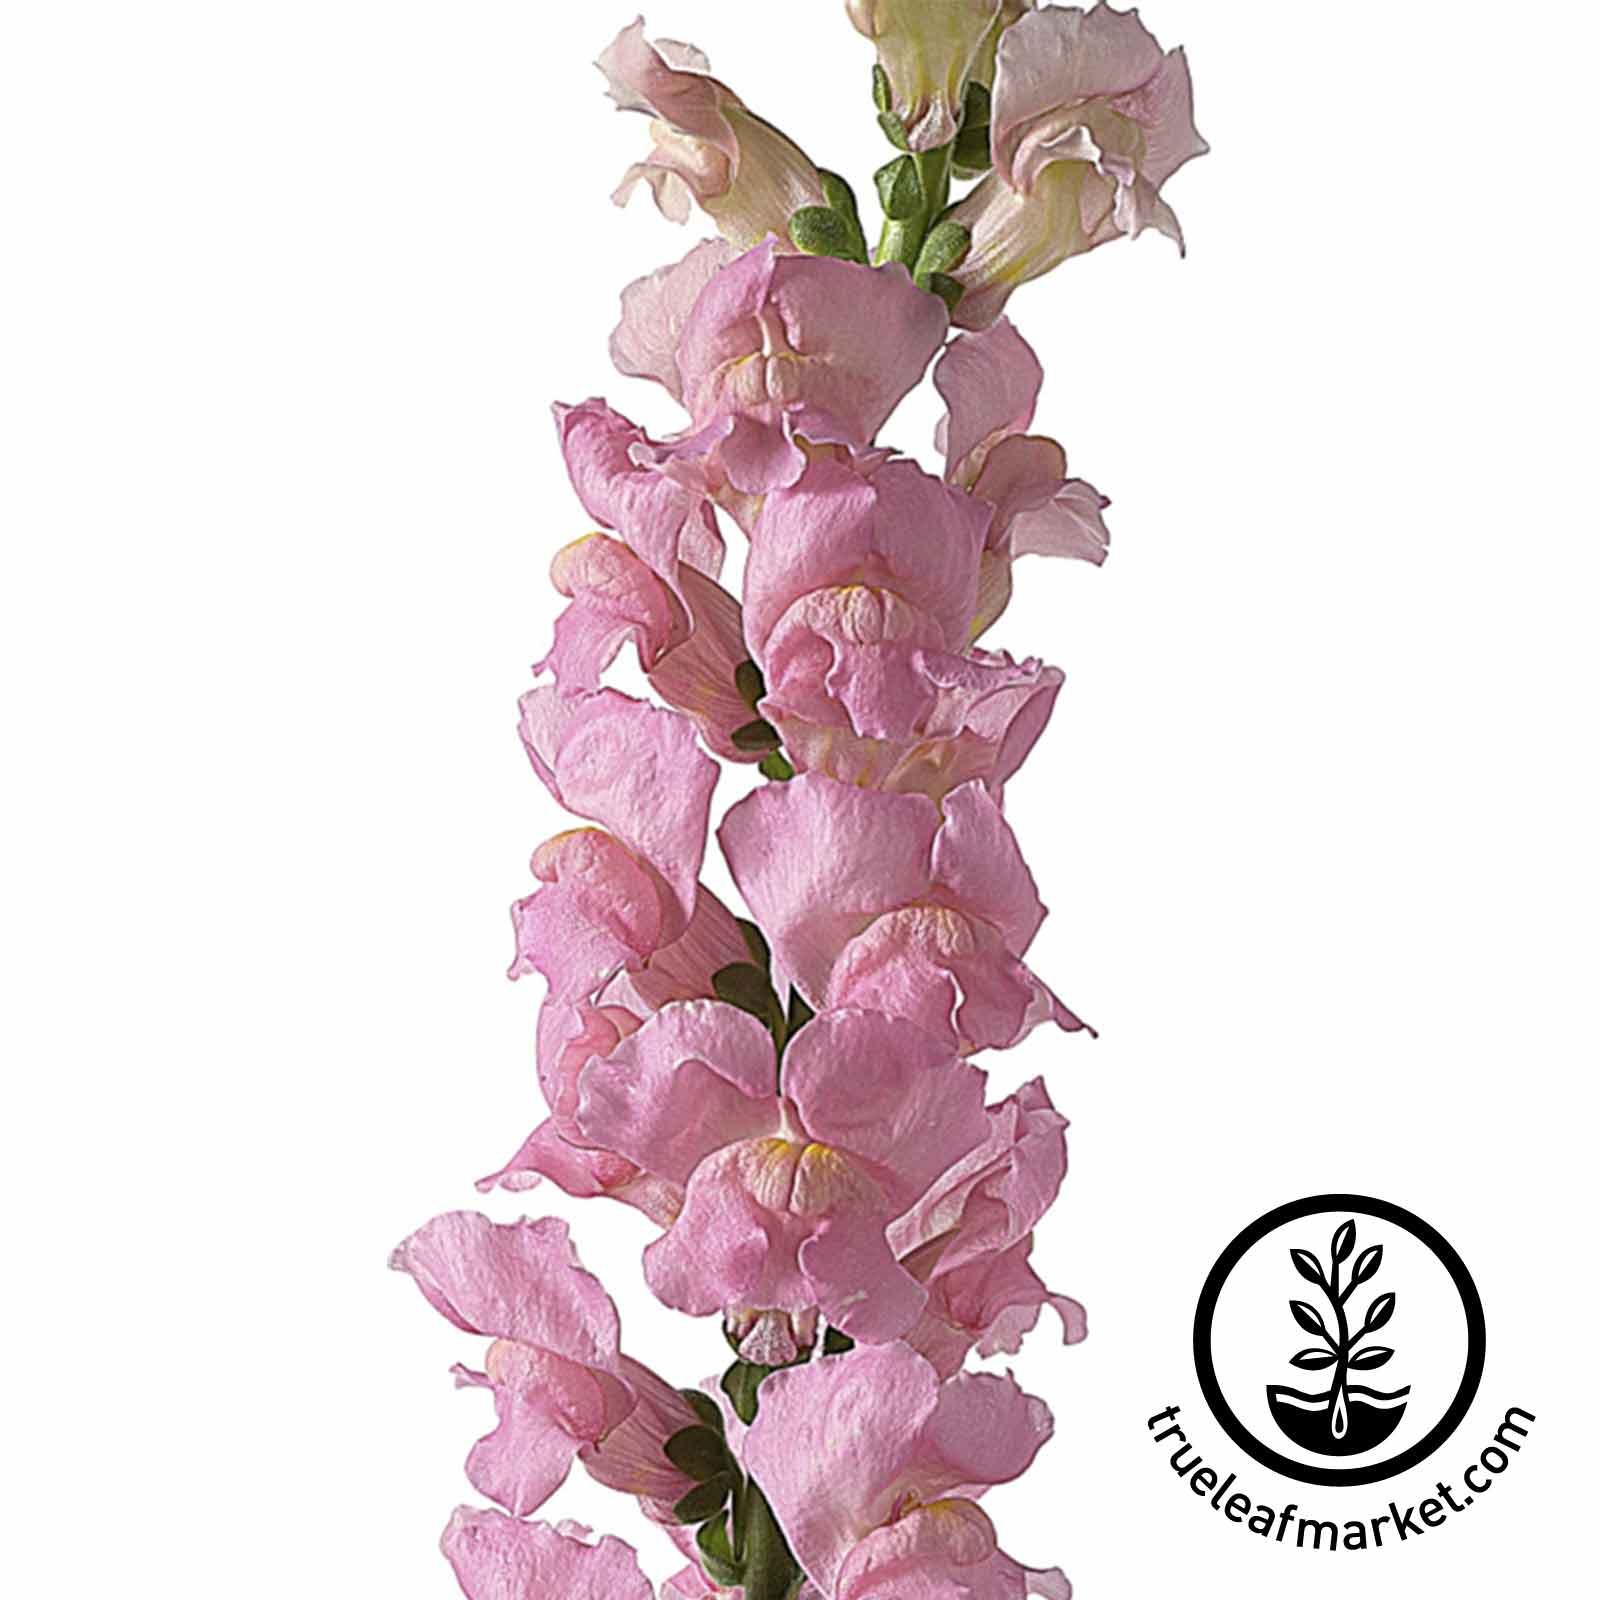 Snapdragon Liberty Classic Series Lavender Seed